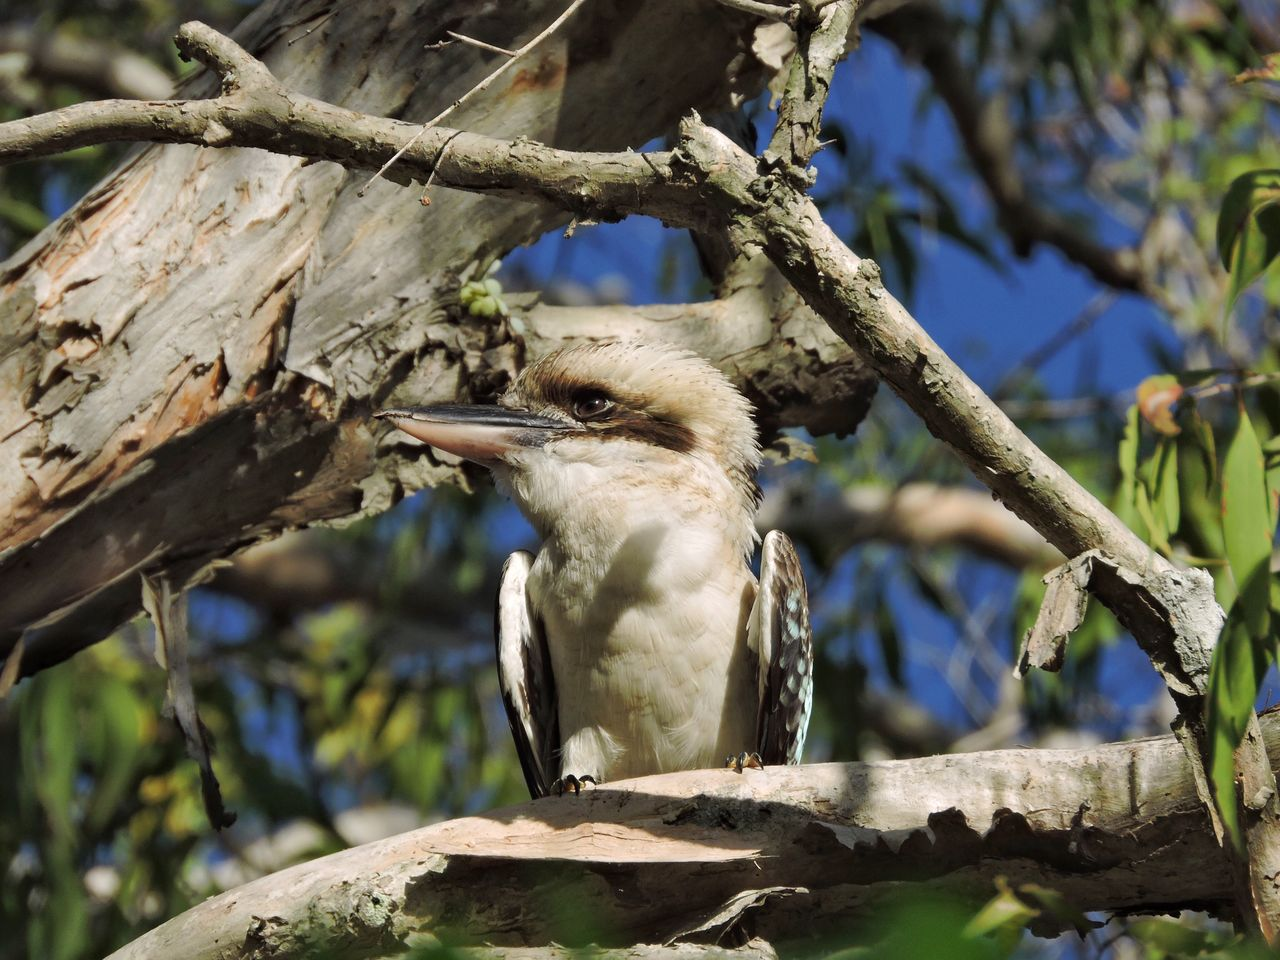 Australian Bird Kookaburra Animal Themes One Animal Animal Wildlife Tree Animals In The Wild Branch Perching Focus On Foreground Wood - Material Outdoors Day Nature No People Beauty In Nature Close-up Green Wildlife Photography Bird Photography Wildlife & Nature Wildlife Close Up Animals In The Wild